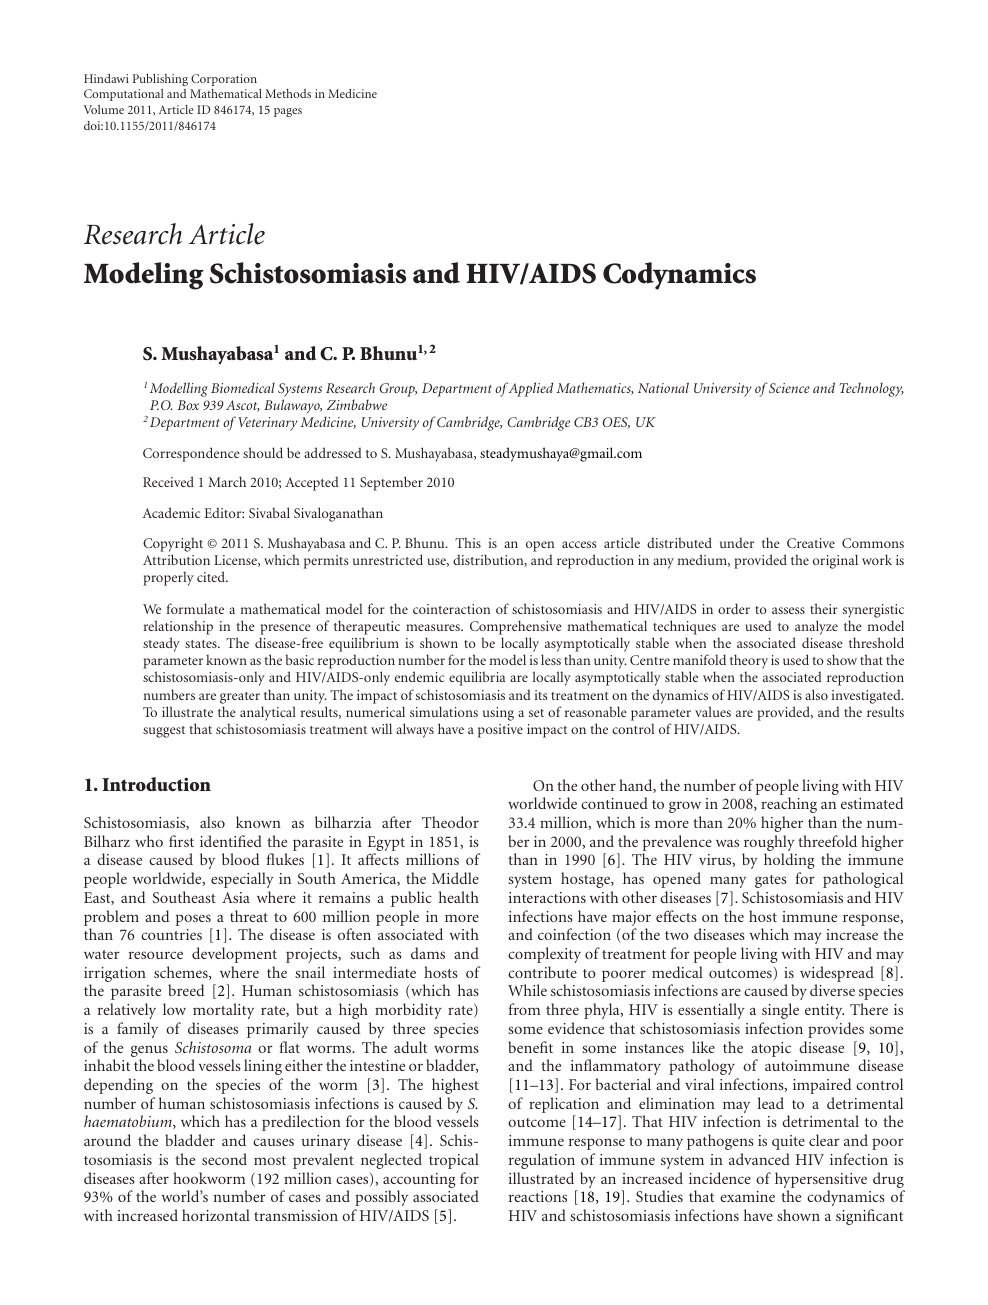 modeling schistosomiasis and hivaids codynamics  topic of